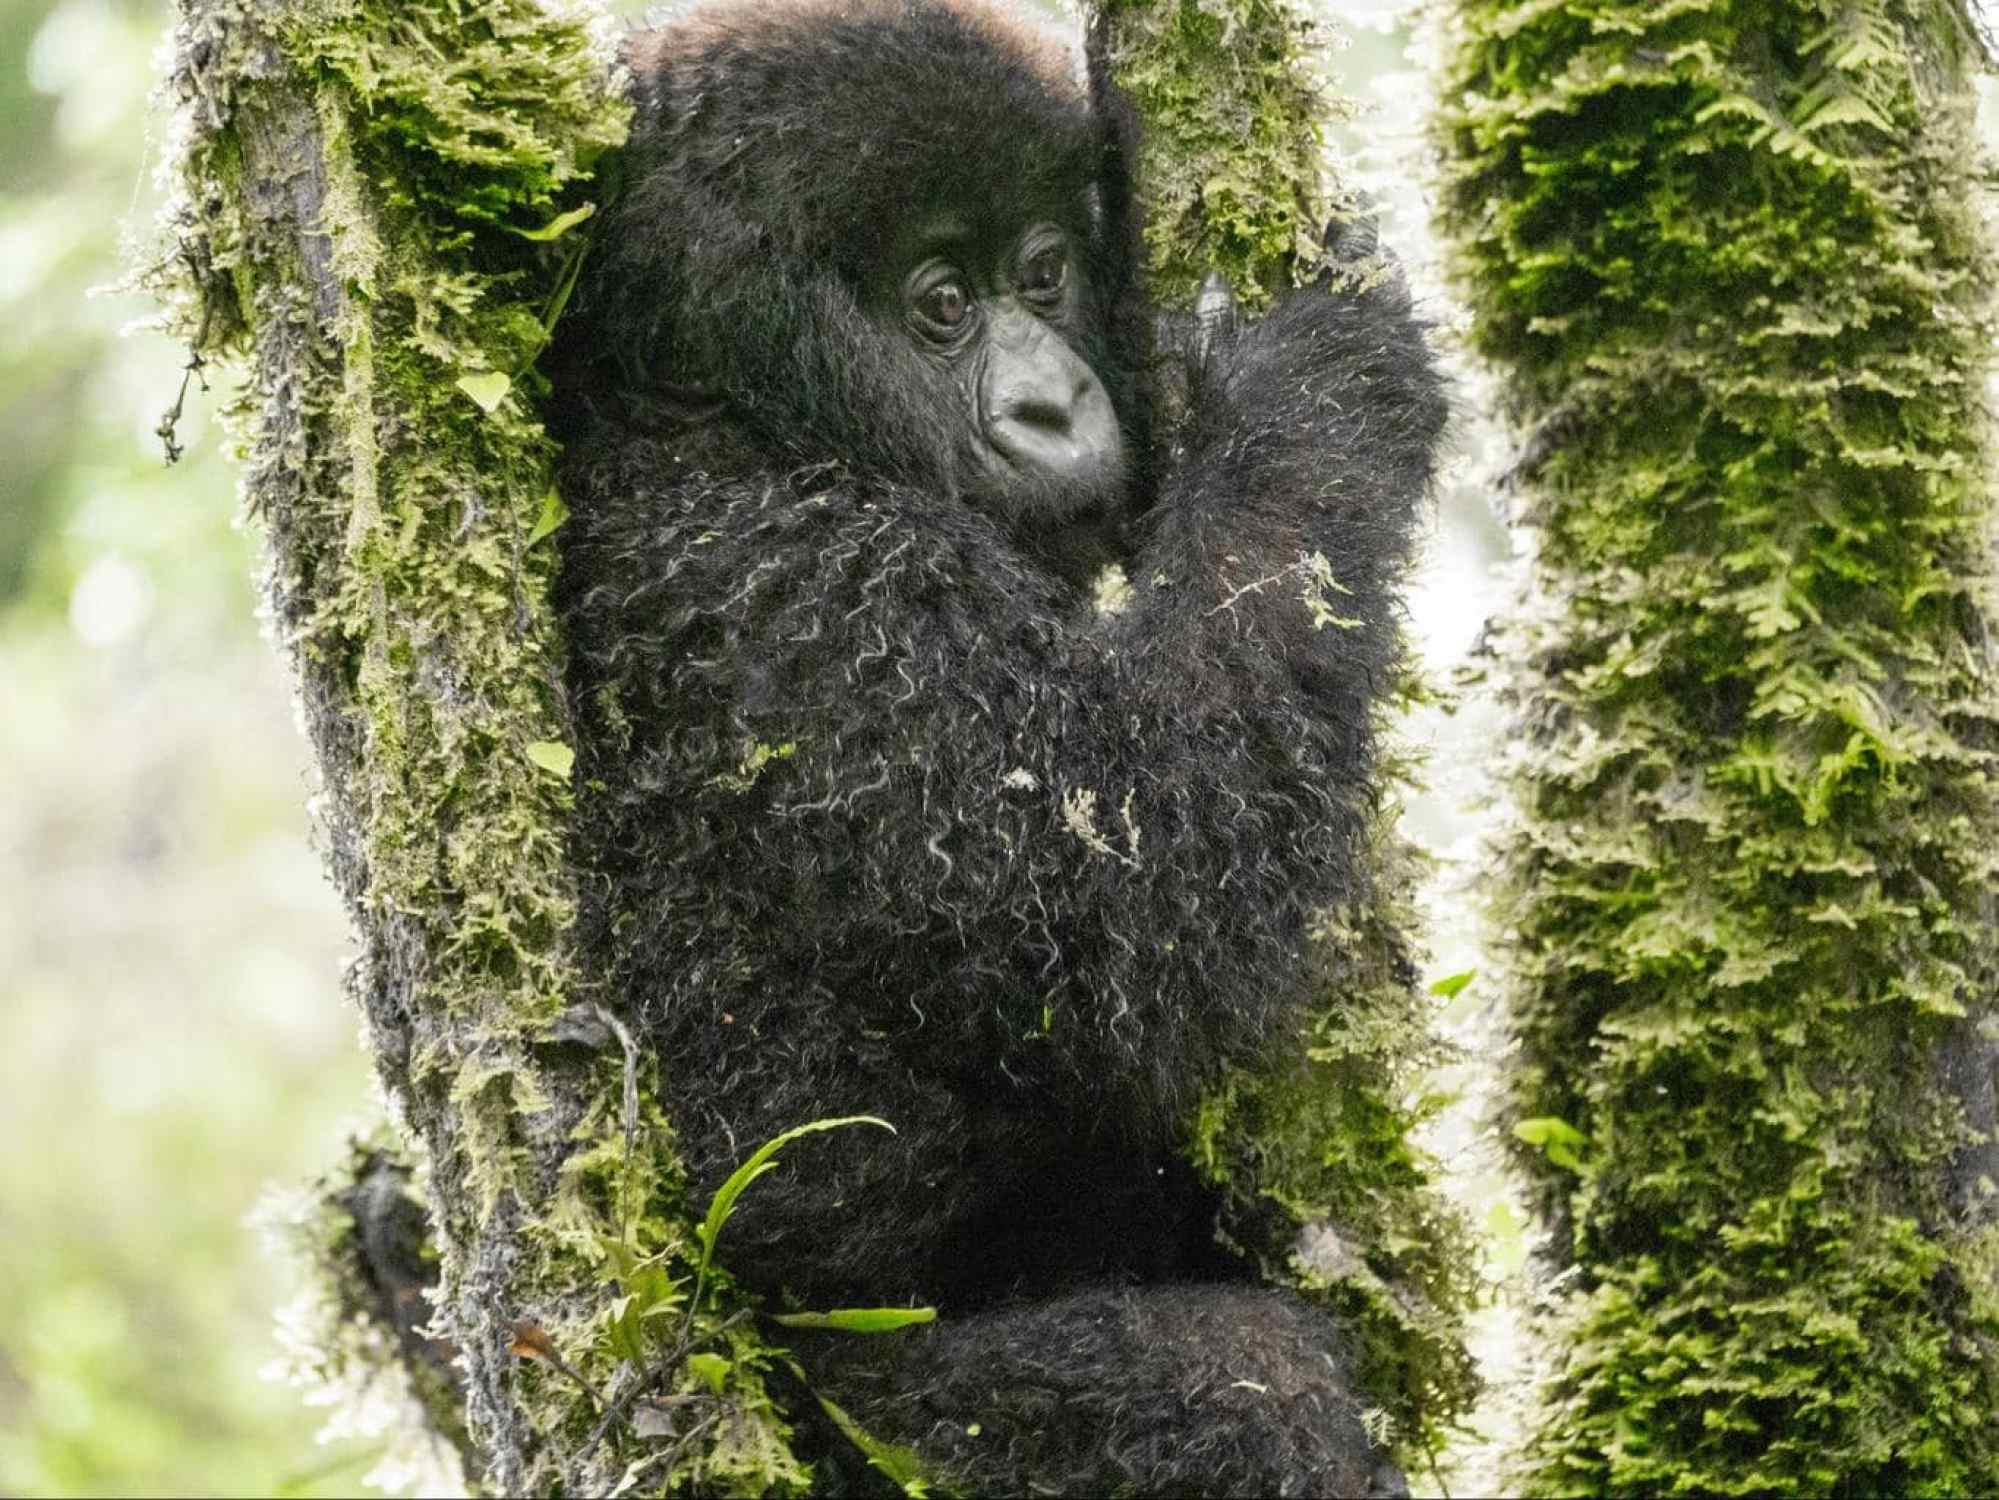 A young gorilla trying to squeeze between the branches